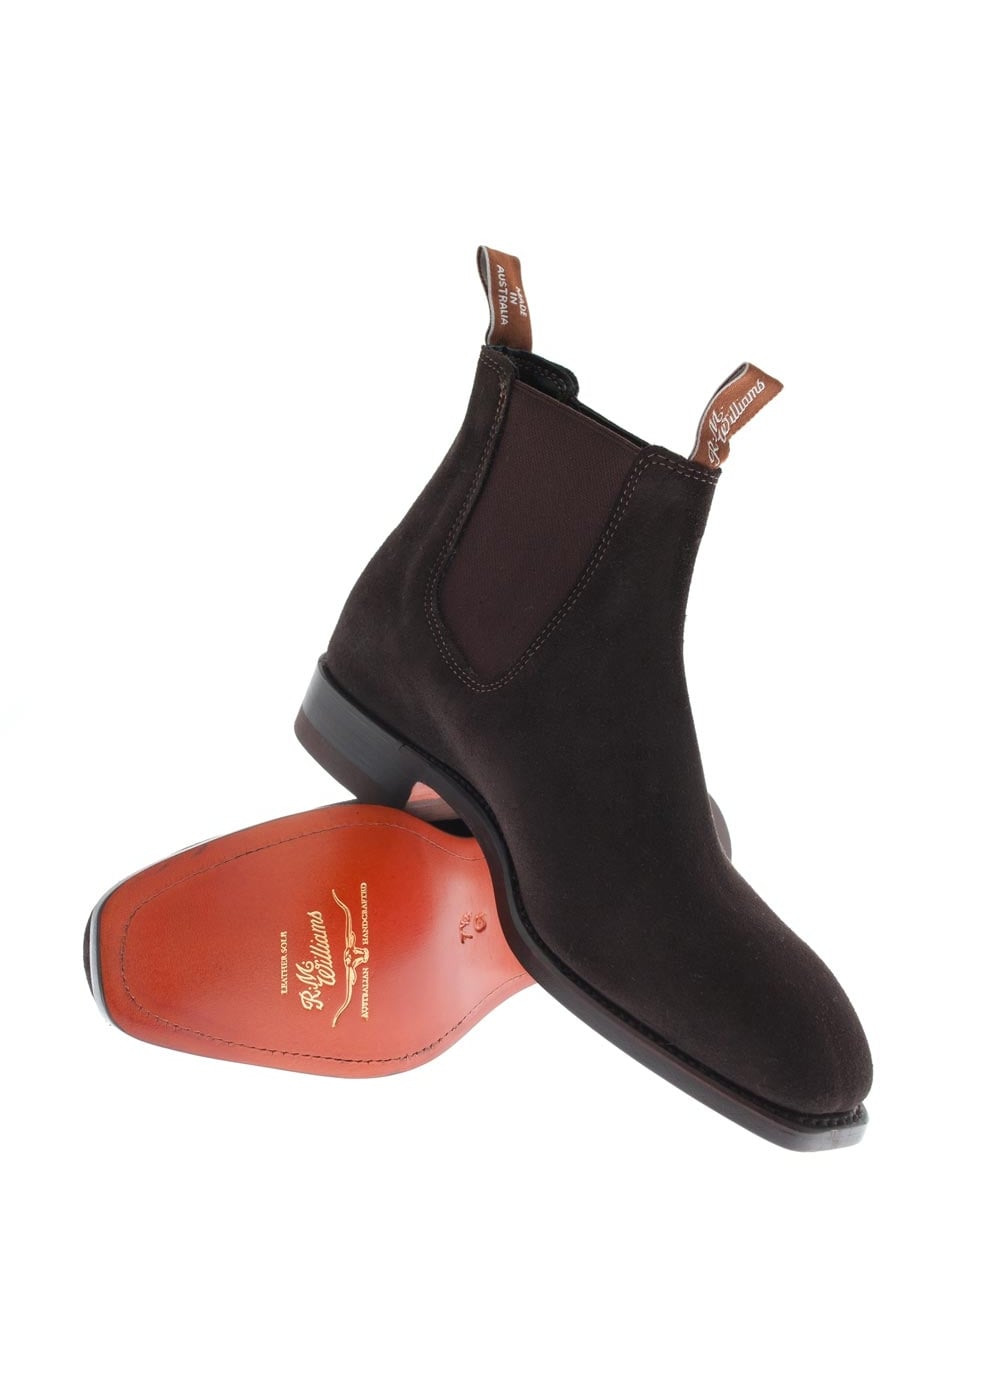 rm williams suede craftsman yearling boots a hume